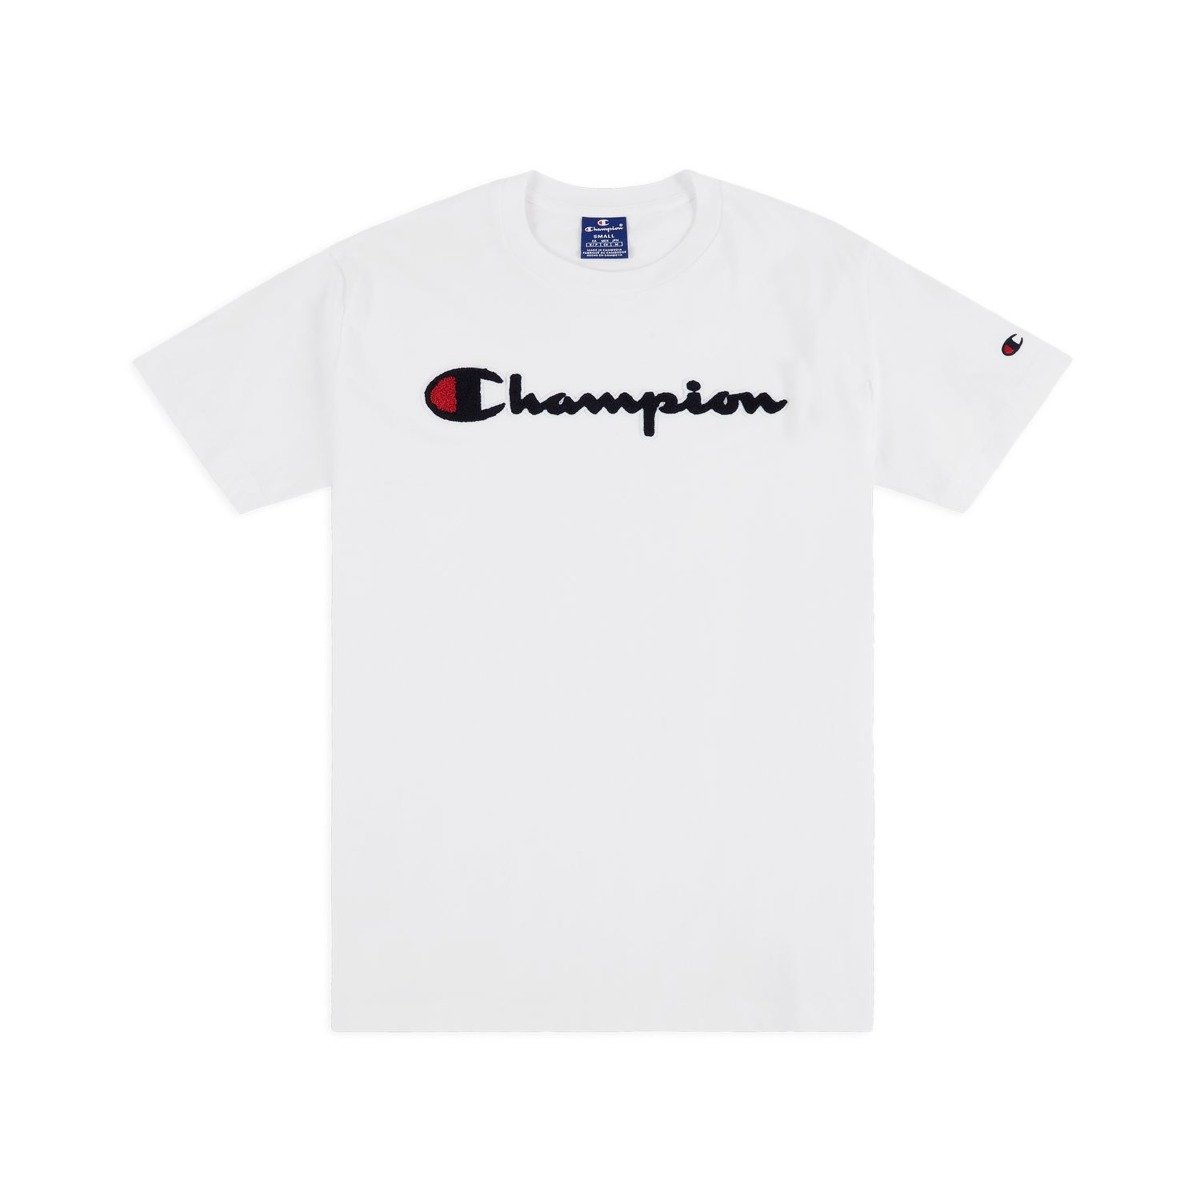 b60945a7d champion chenille logo t-shirt white | Clothes \ T-shirts \ T-Shirts ...